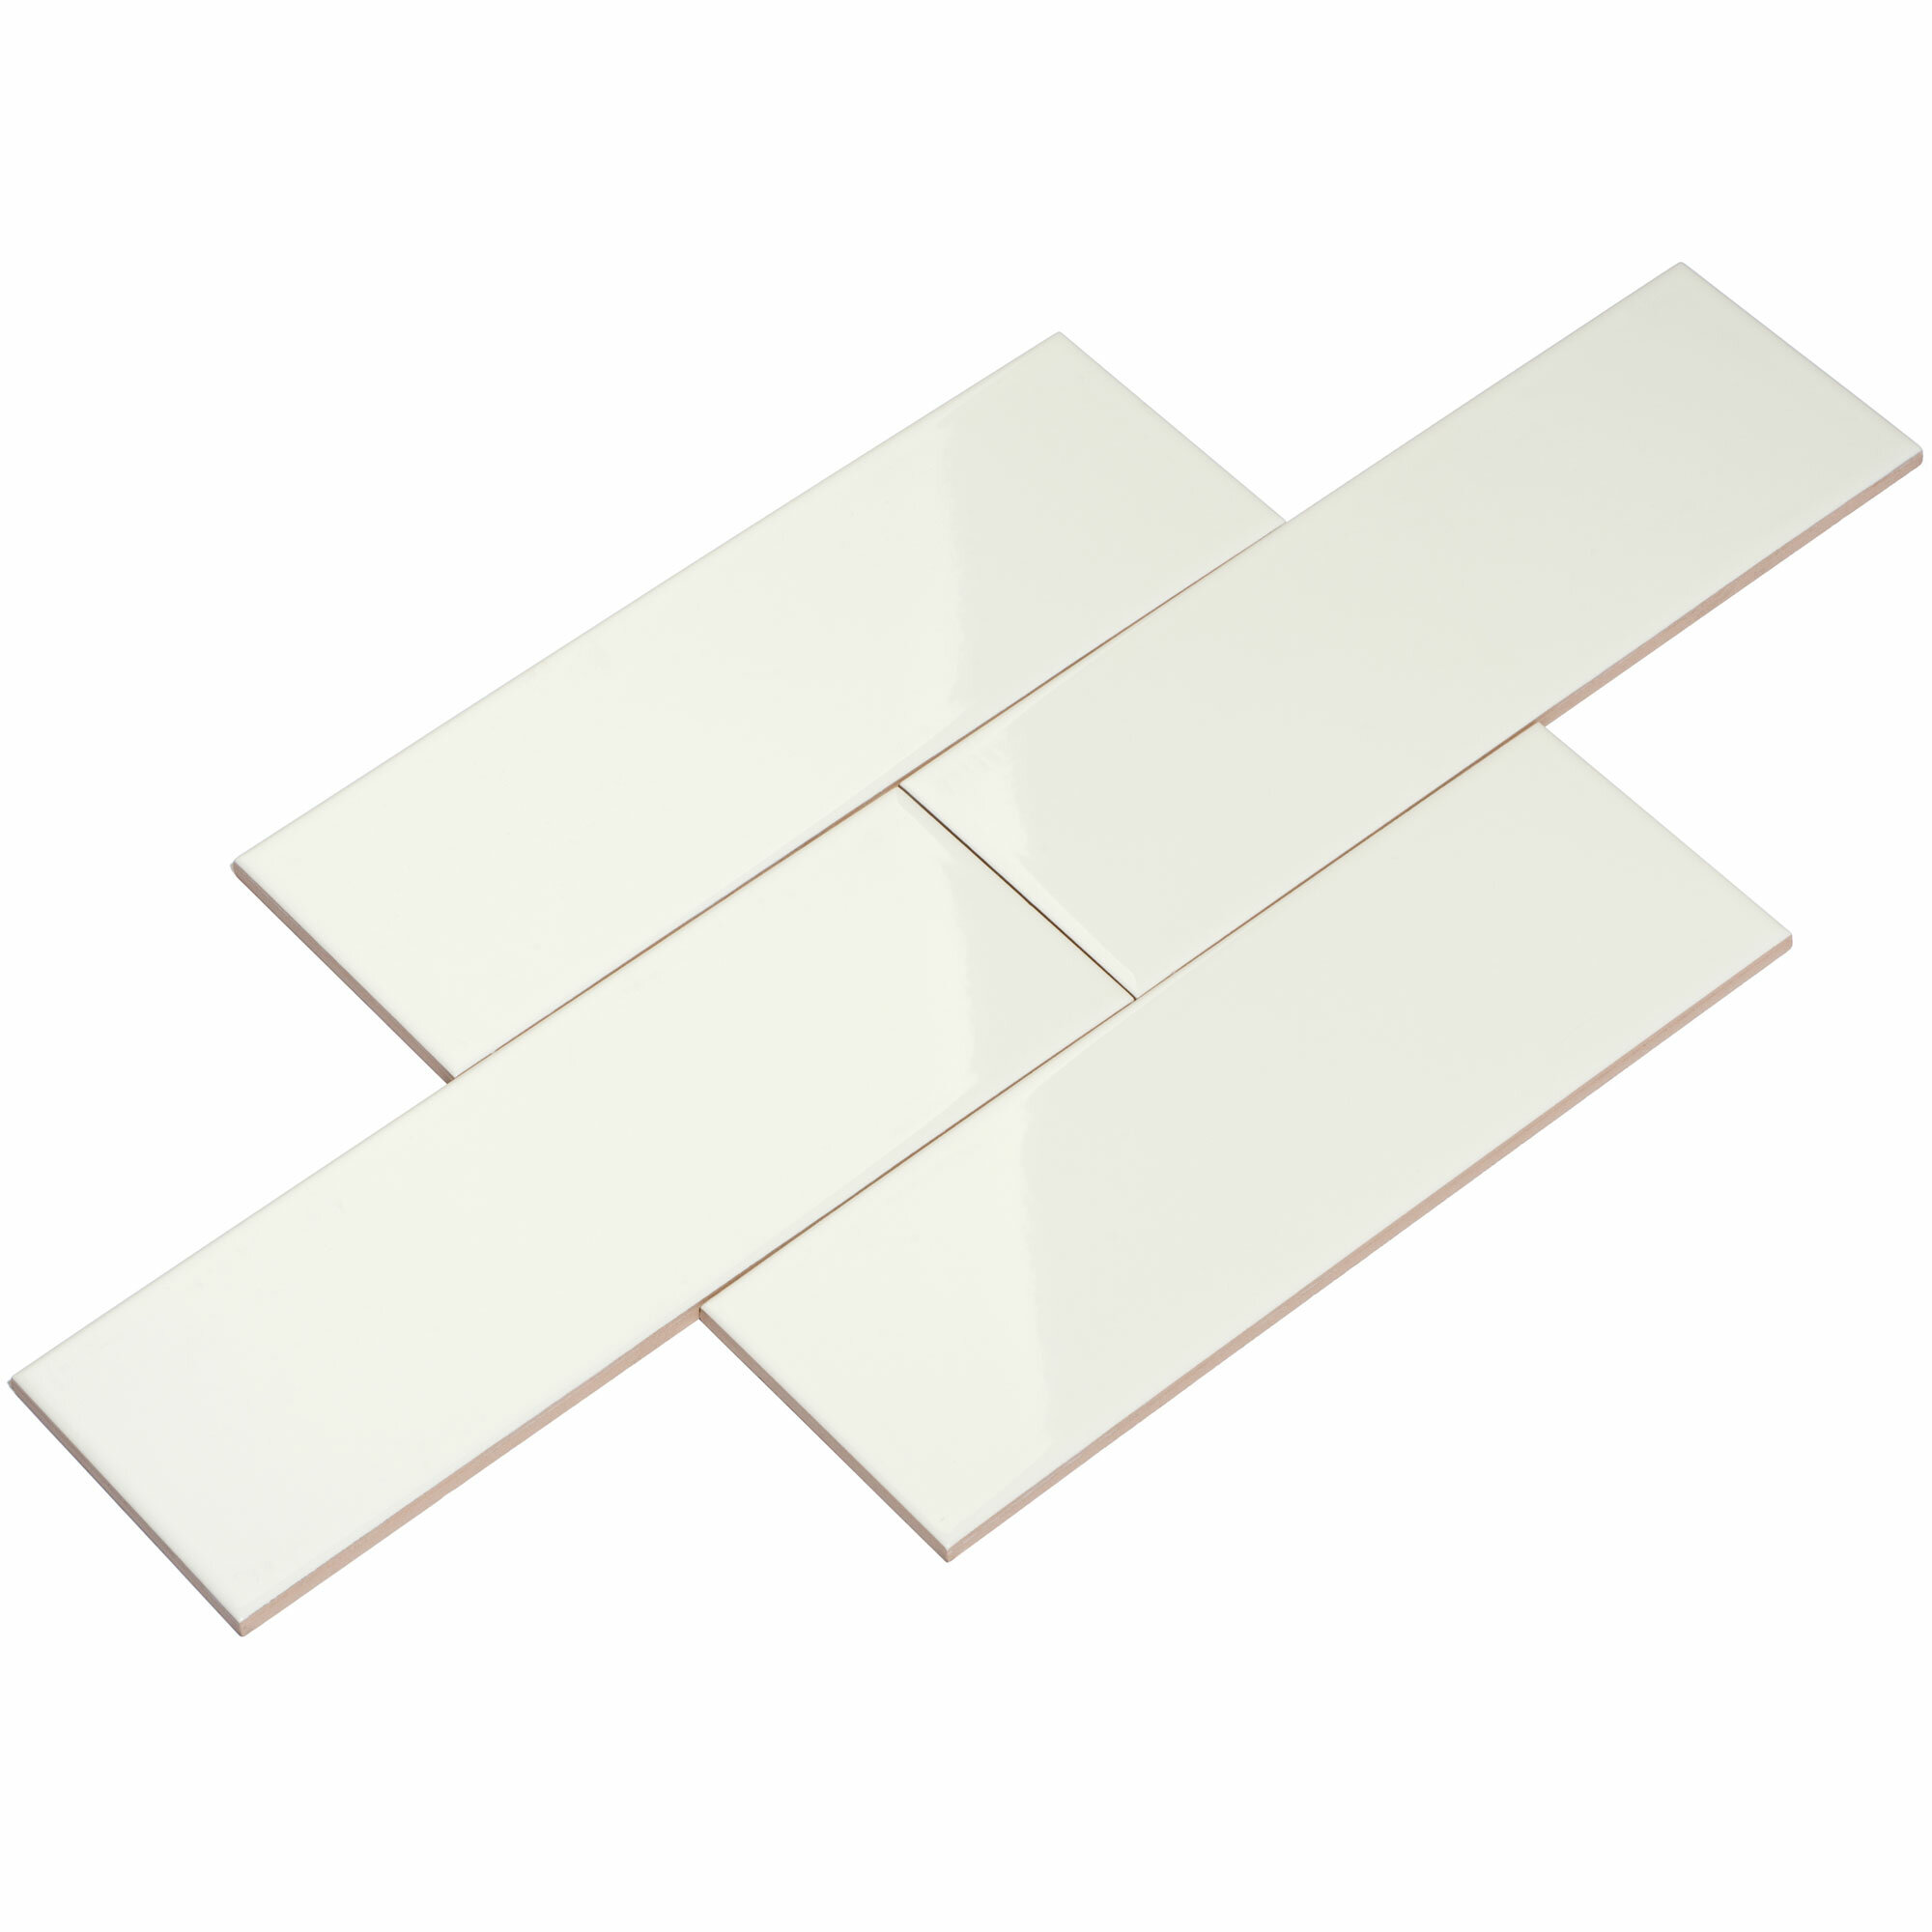 Excellent 1 Ceramic Tiles Thick 24 X 48 Drop Ceiling Tiles Round 2X2 Suspended Ceiling Tiles 3X6 White Subway Tile Youthful 4 X 8 Glass Subway Tile Pink6 X 6 Tiles Ceramic Antique White Subway Tile | Wayfair